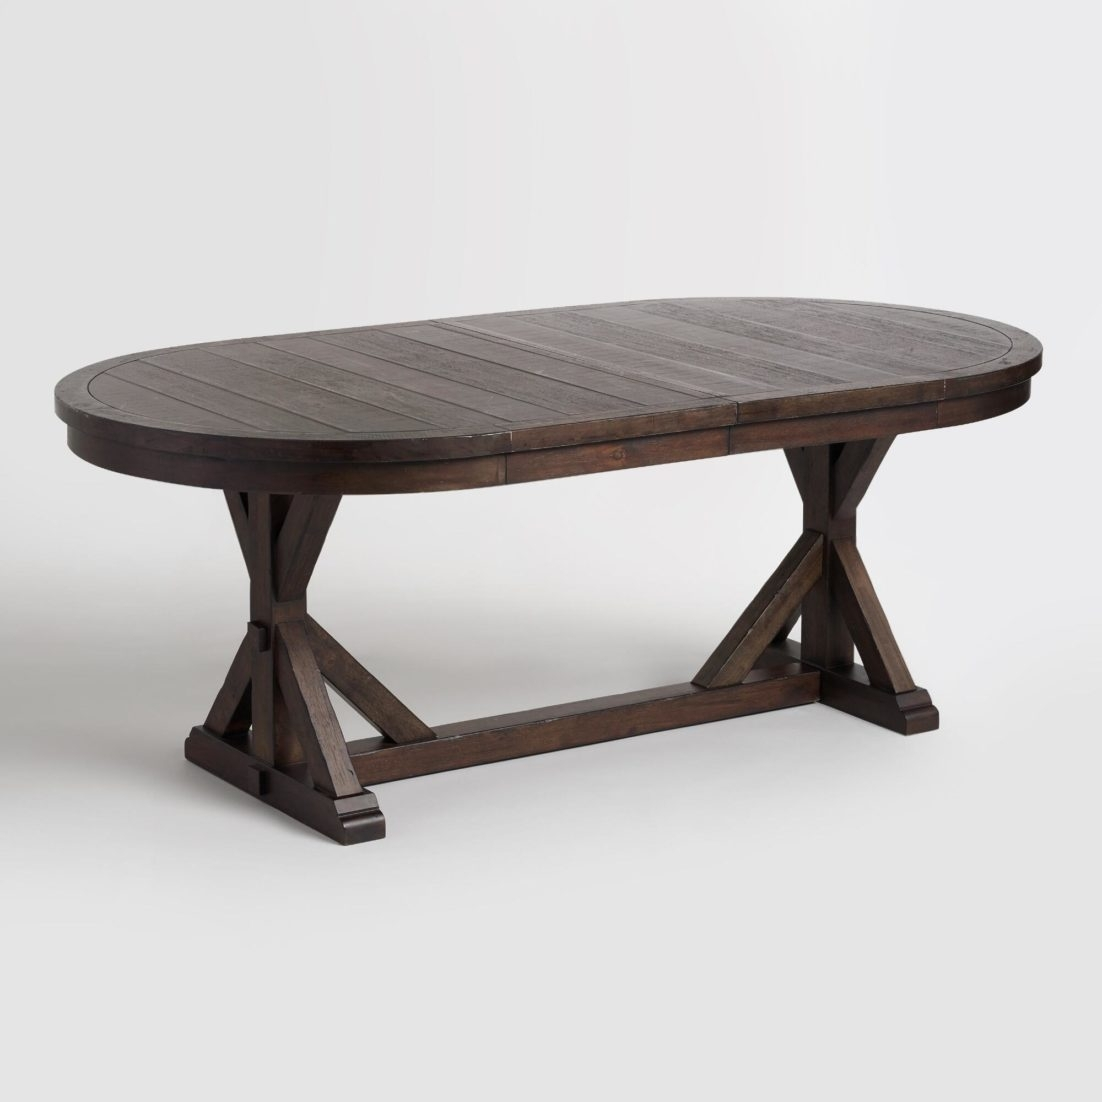 Wood Dining Table Room Tables Rustic Farmhouse Style World Market In Most Up To Date Market Dining Tables (View 12 of 20)